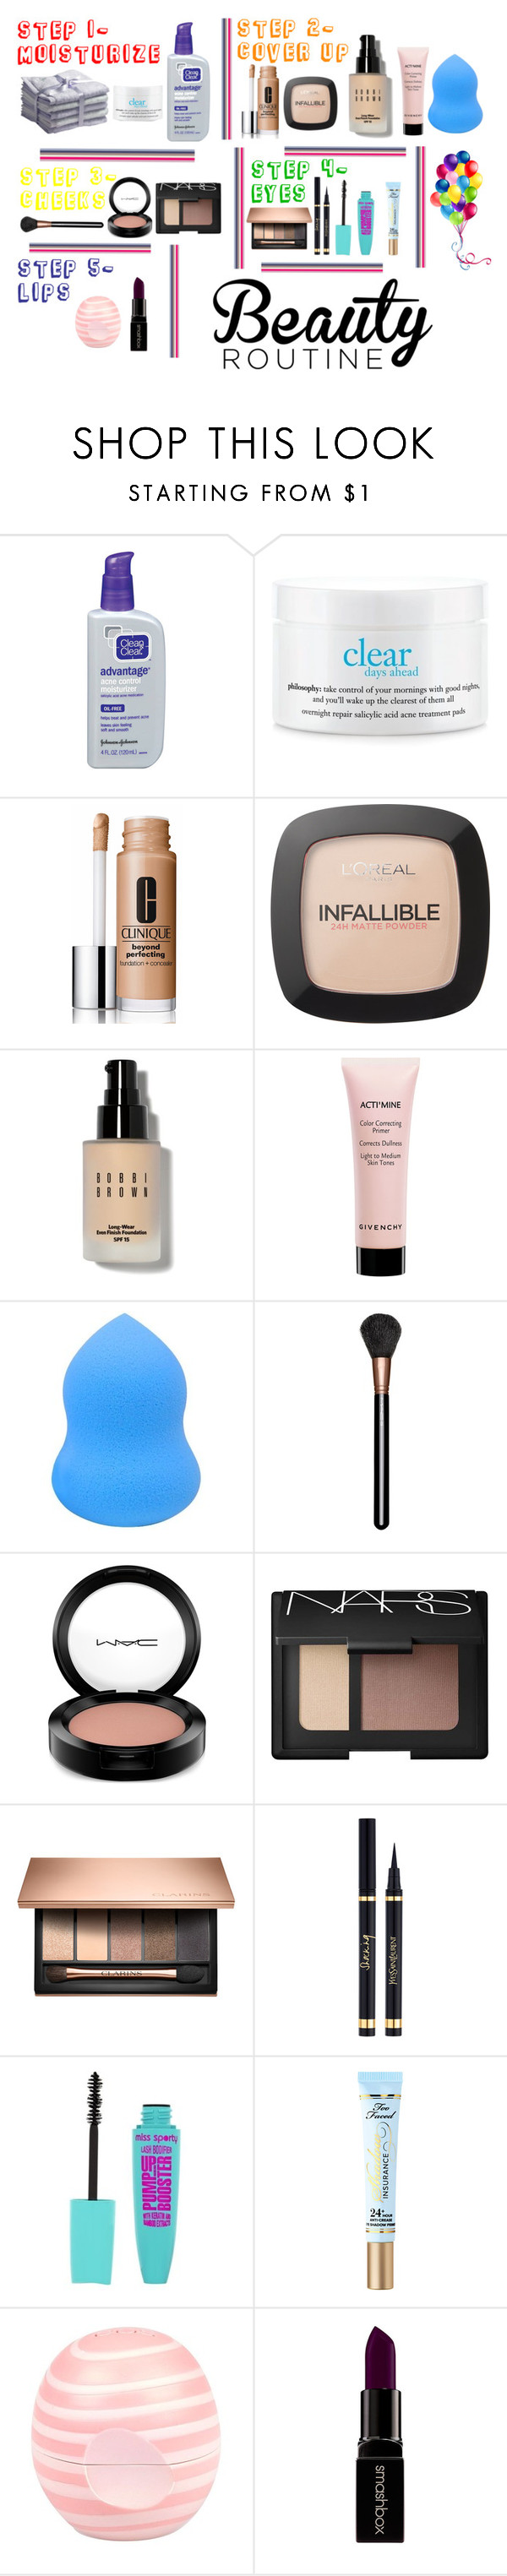 """""""5 Step Makeup Routine"""" by emwalden ❤ liked on Polyvore featuring beauty, philosophy, Clinique, L'Oréal Paris, Bobbi Brown Cosmetics, Givenchy, MAC Cosmetics, NARS Cosmetics, Yves Saint Laurent and Too Faced Cosmetics"""